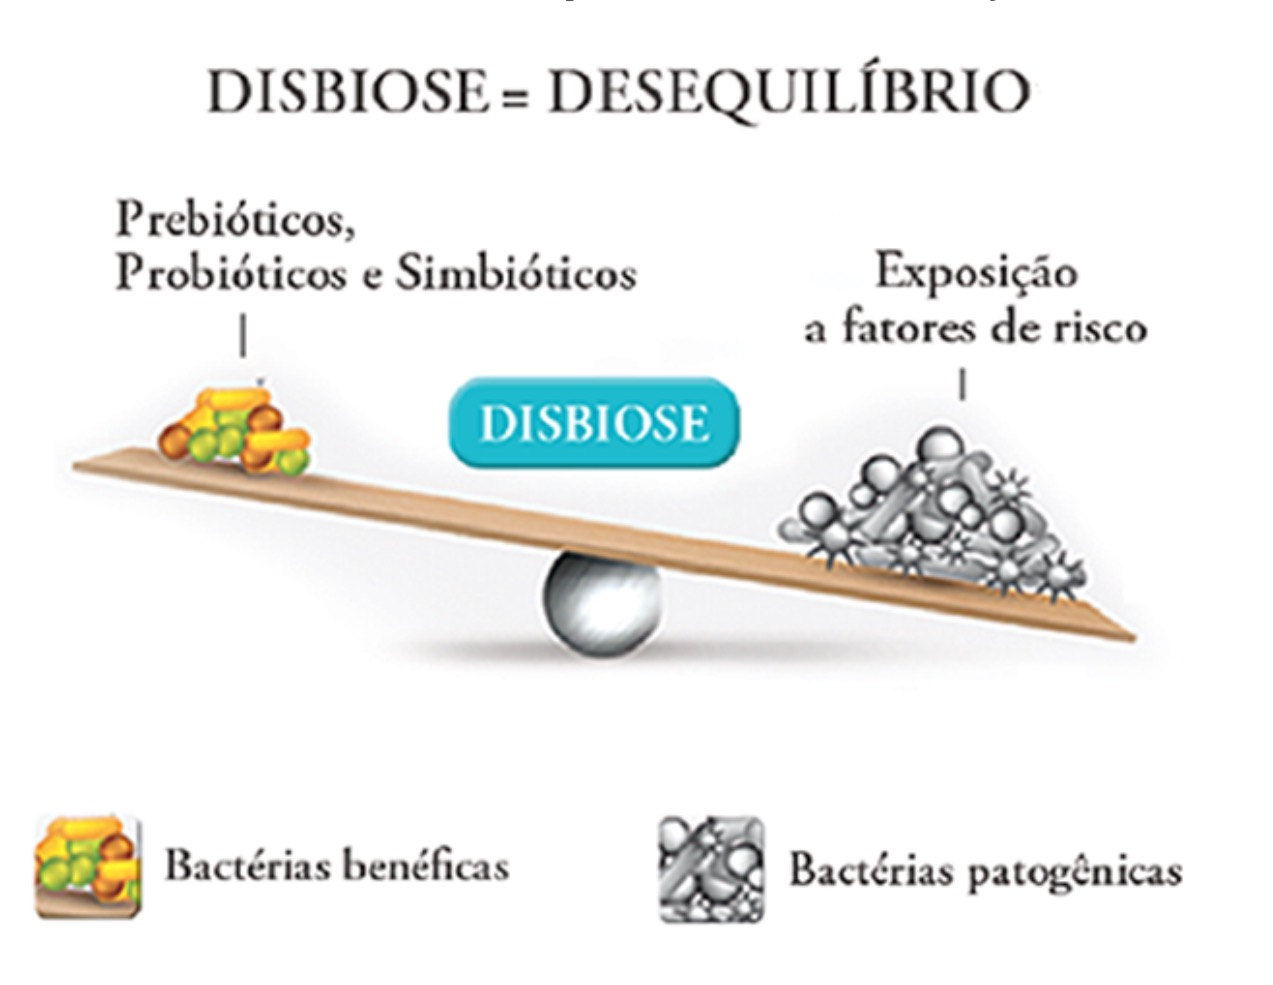 Disbiose / Desequilíbrio Intestinal -